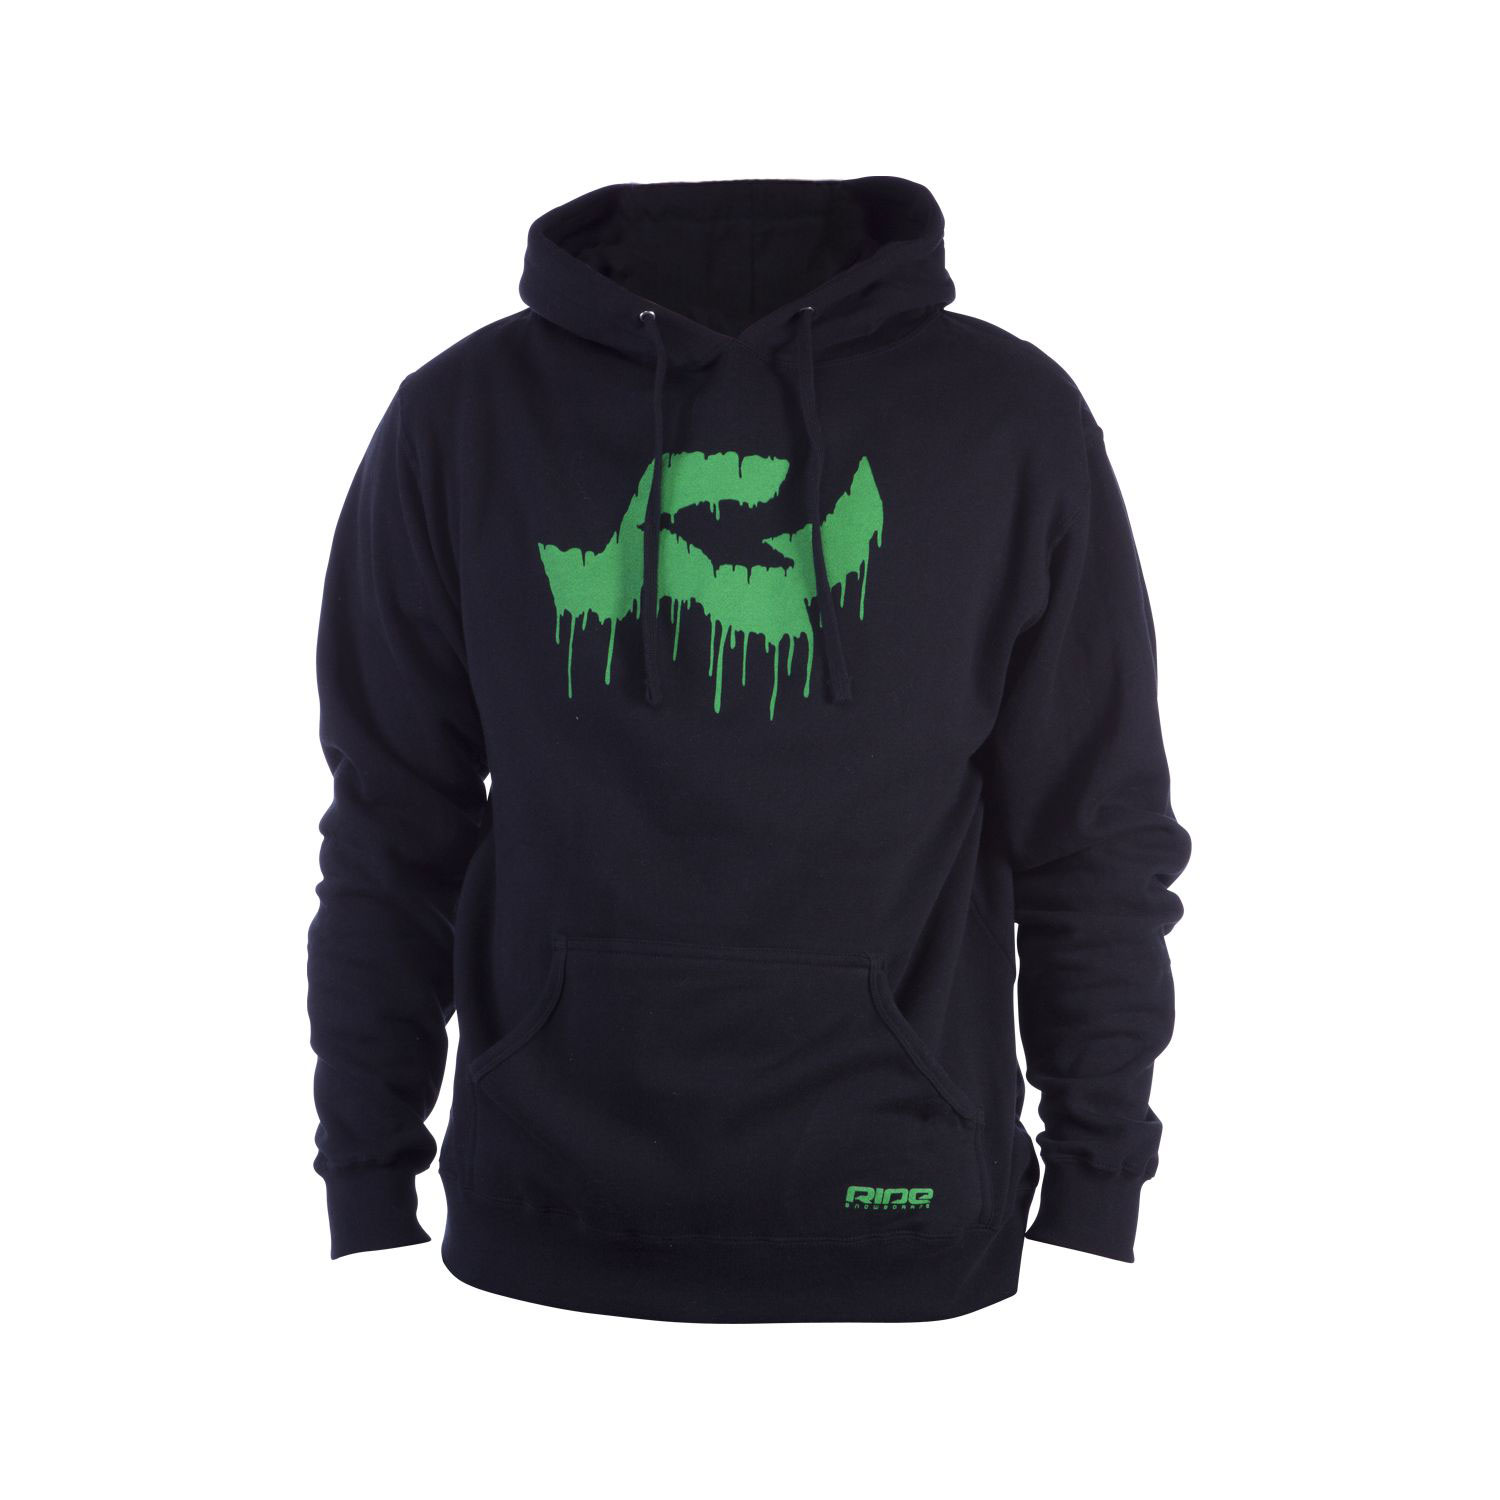 Key Features of the Ride Logo Drip Pullover Hoodie: 280g 80% Cotton / 20% Poly Center Front Screen Print Pocket Screen Print - $29.95